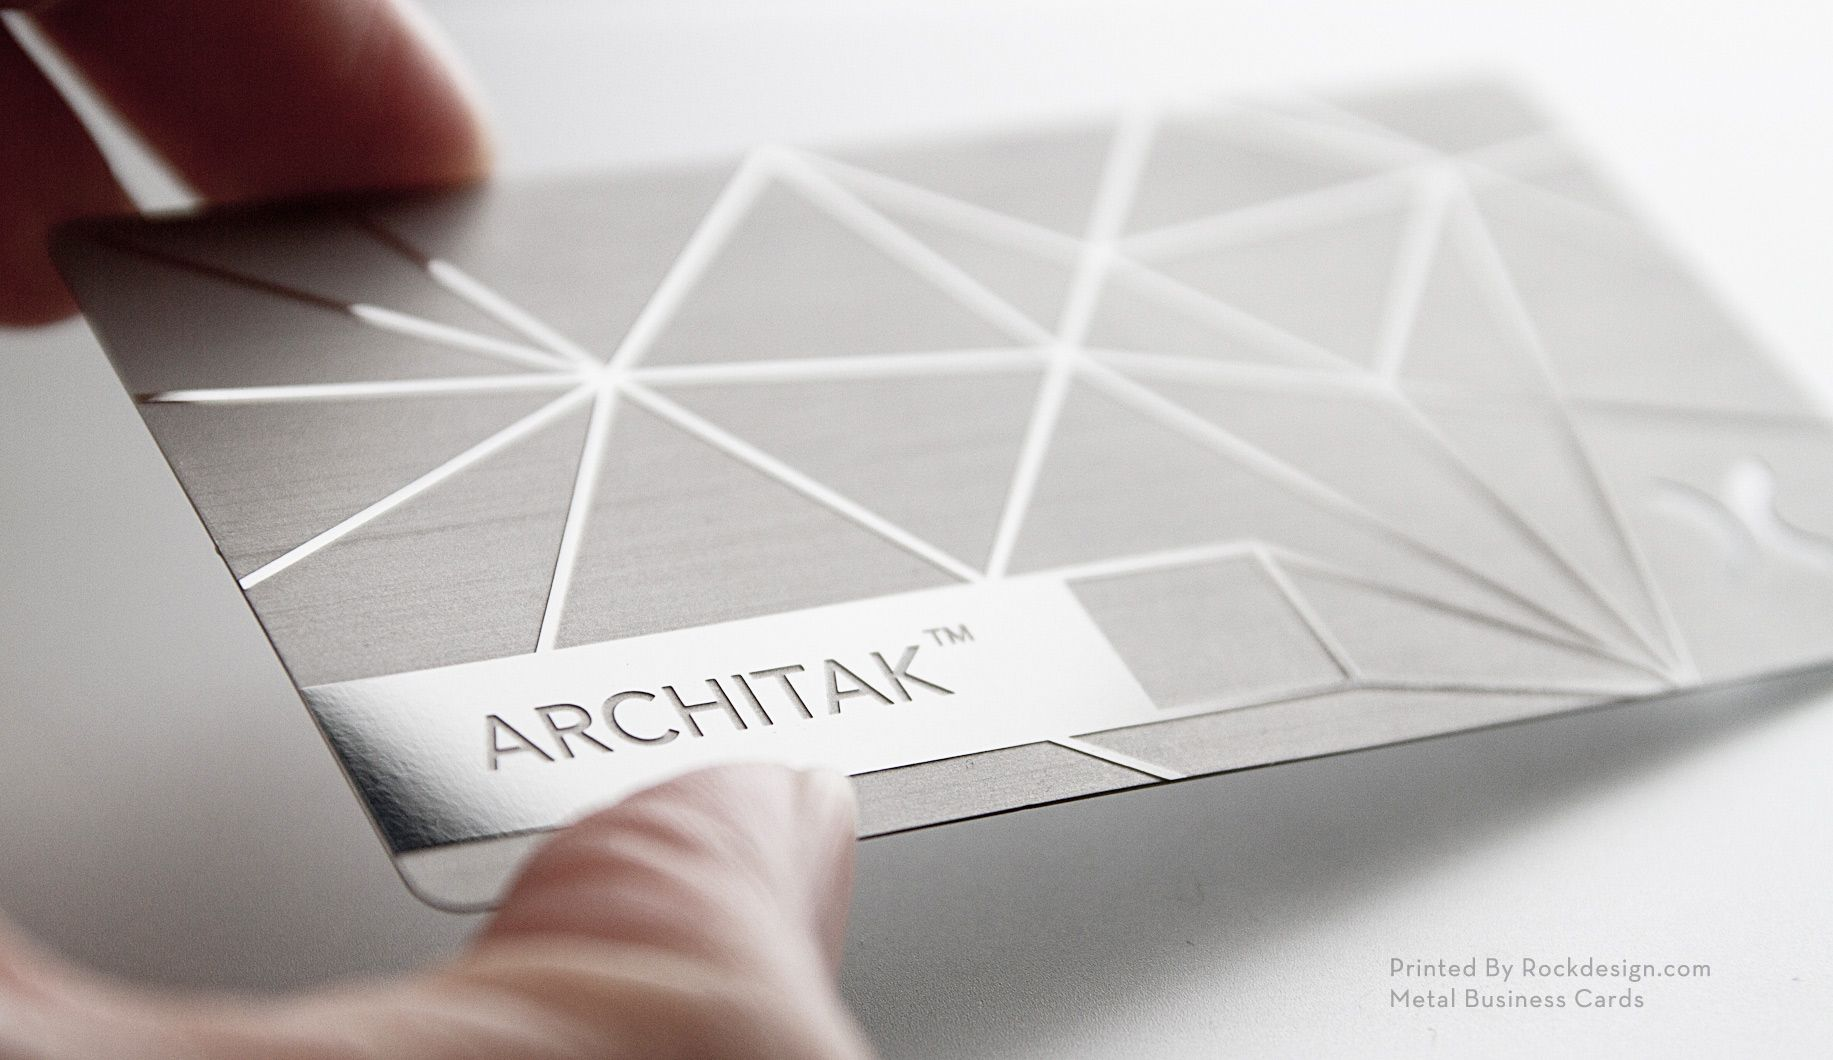 Metal business cards. Now that\'s something to aspire to ...